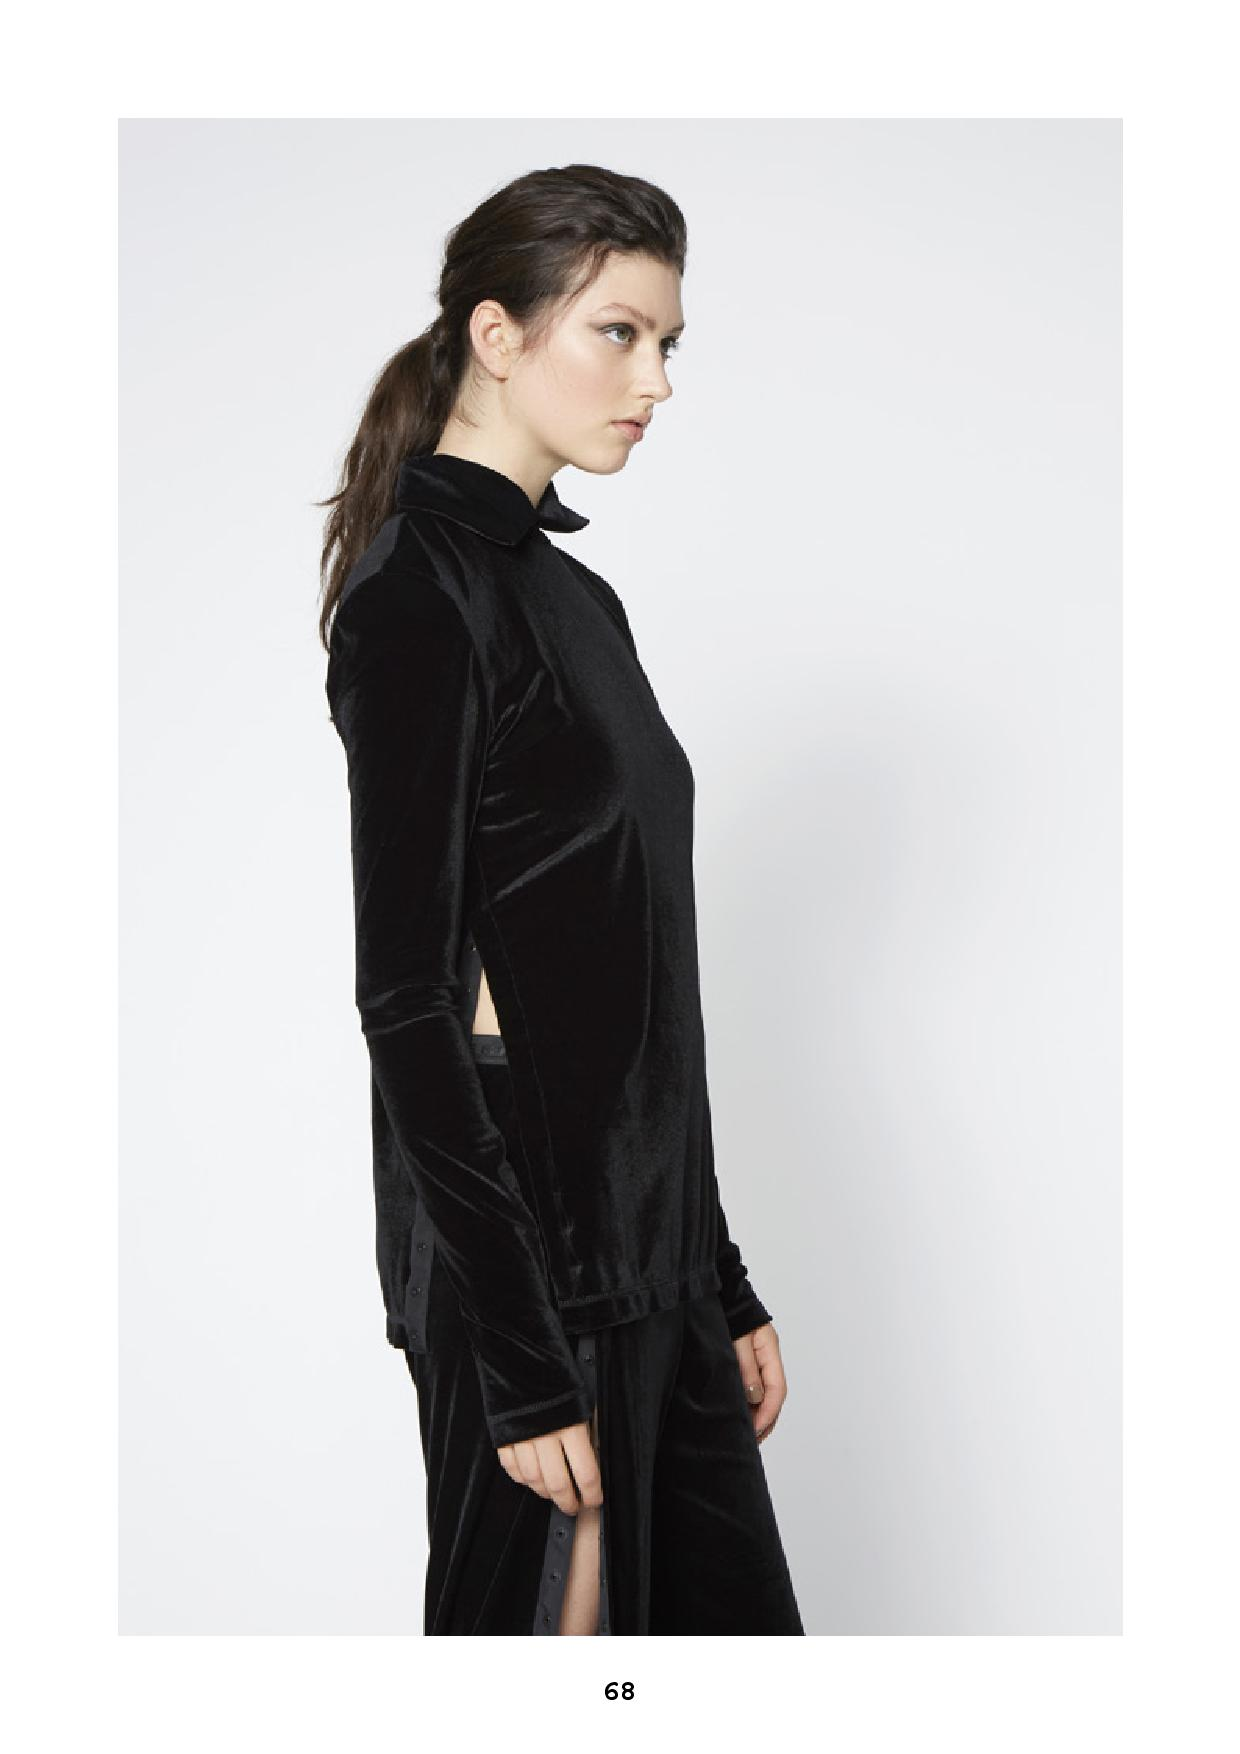 aw17 women s keypieces-page-069